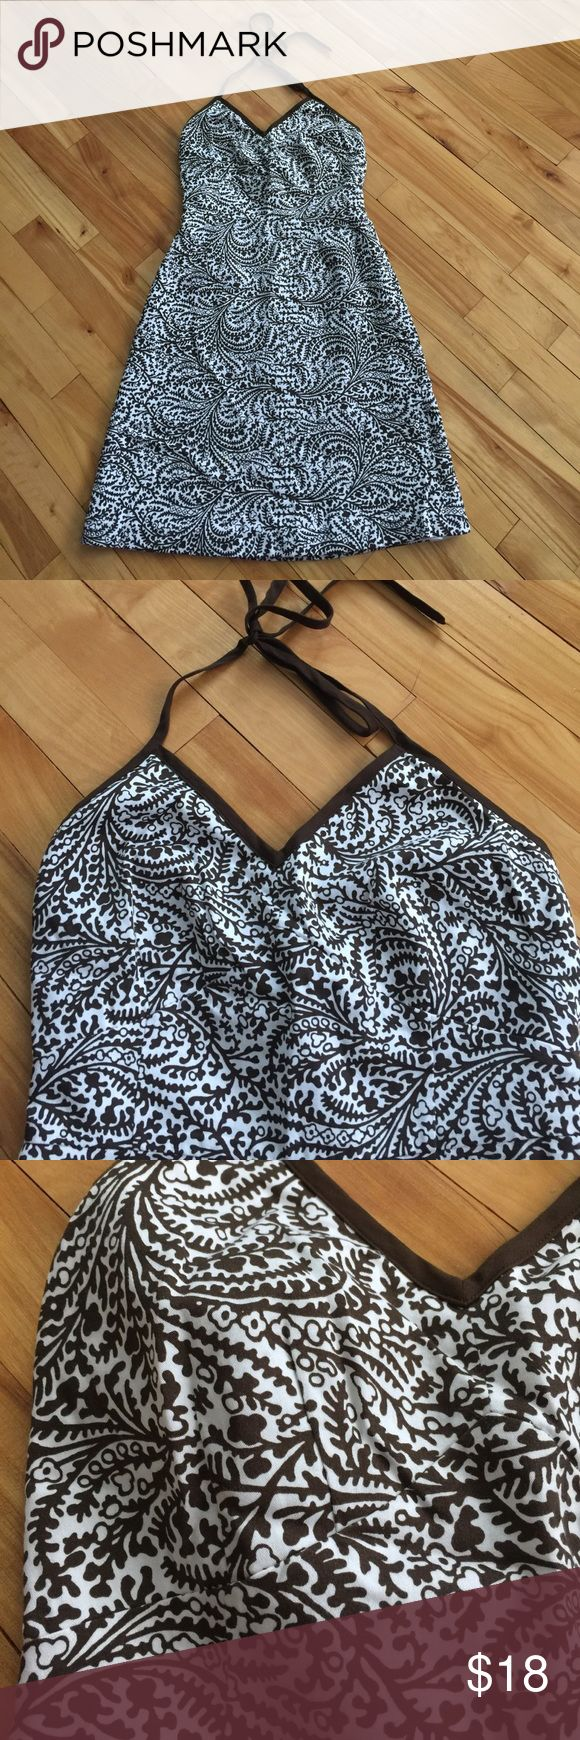 Ann Taylor brown/white print halter dress, new, 0P Ann Taylor brown and white print midi halter. Inverted V empire waistline with double upward breast darts. Lined in solid white silky fabric. Back center invisible zipper. New, no tags. Size 0P. Nonsmoking home. Ann Taylor Dresses Midi